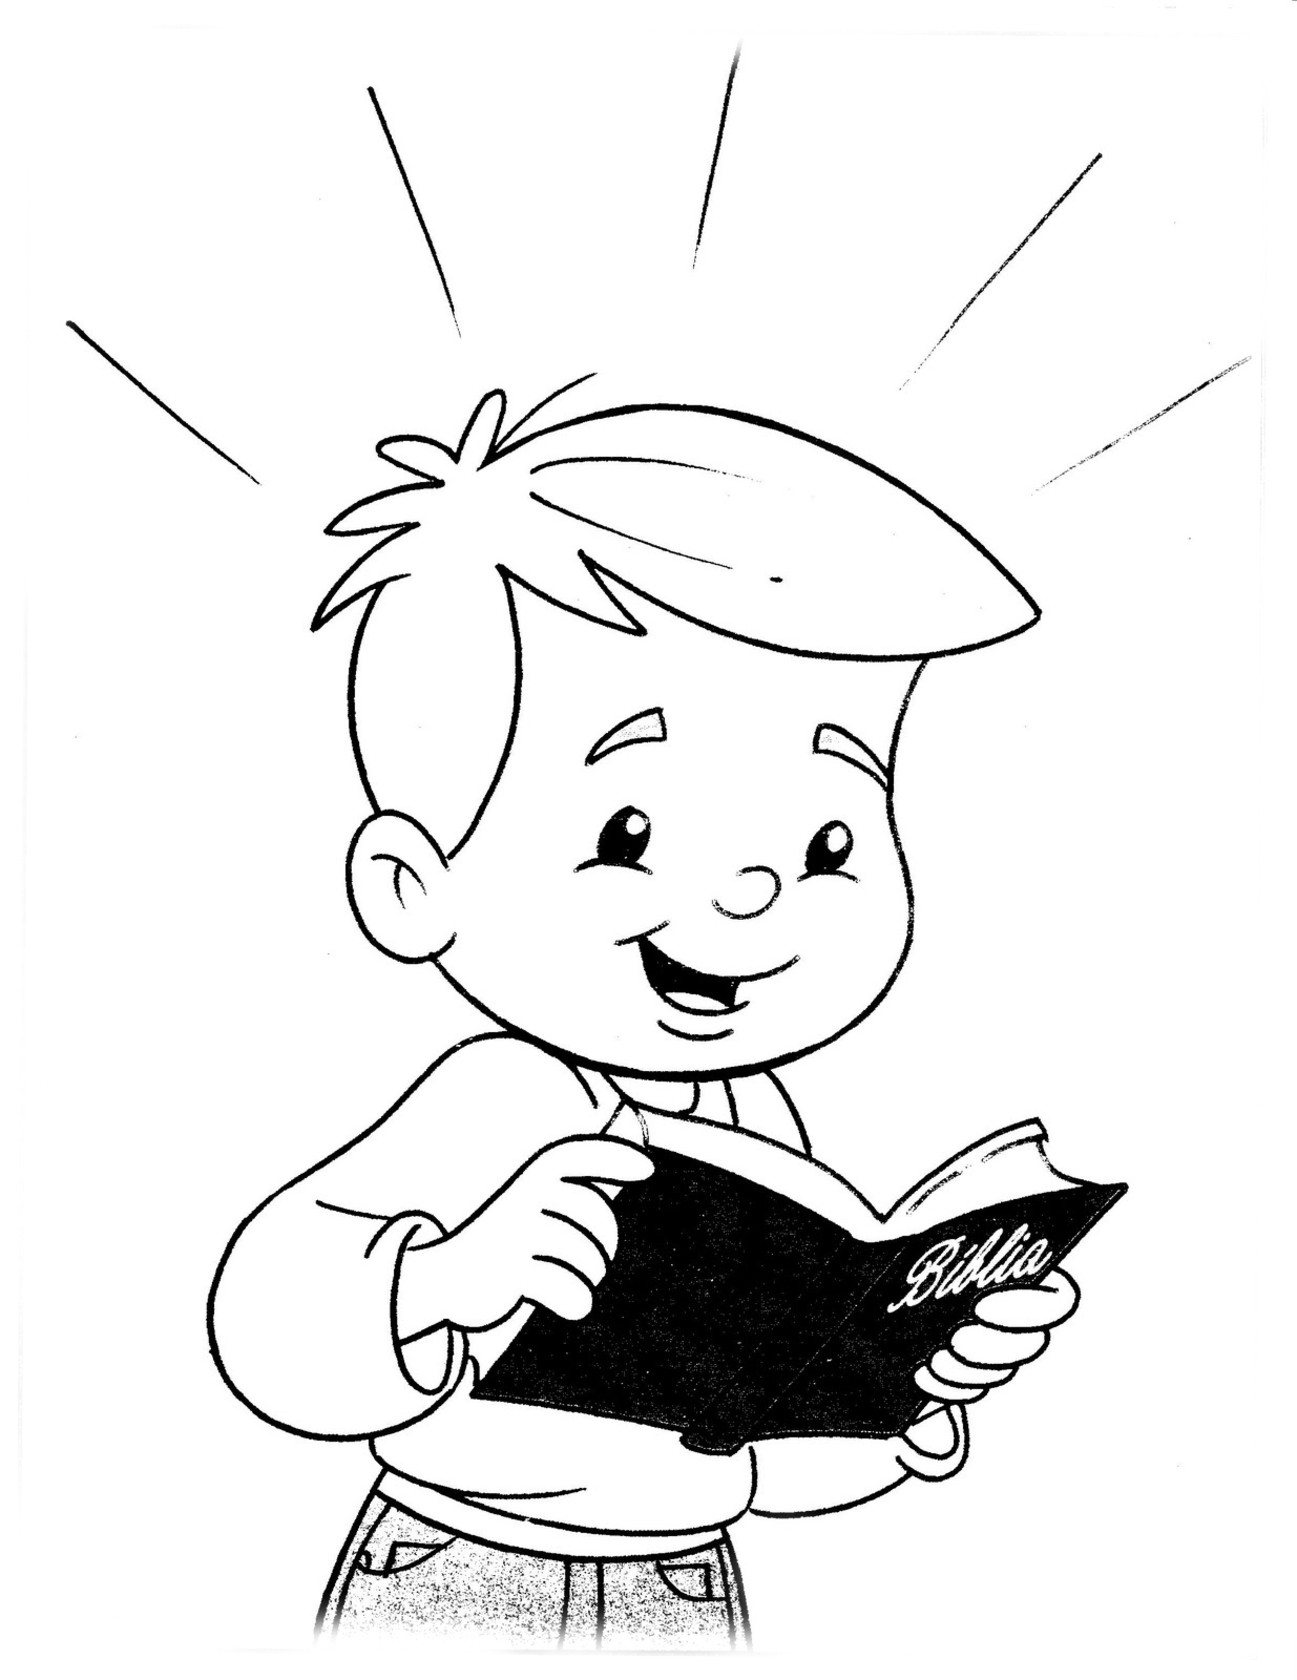 free printable christian coloring pages for kids best coloring - Pages For Kids